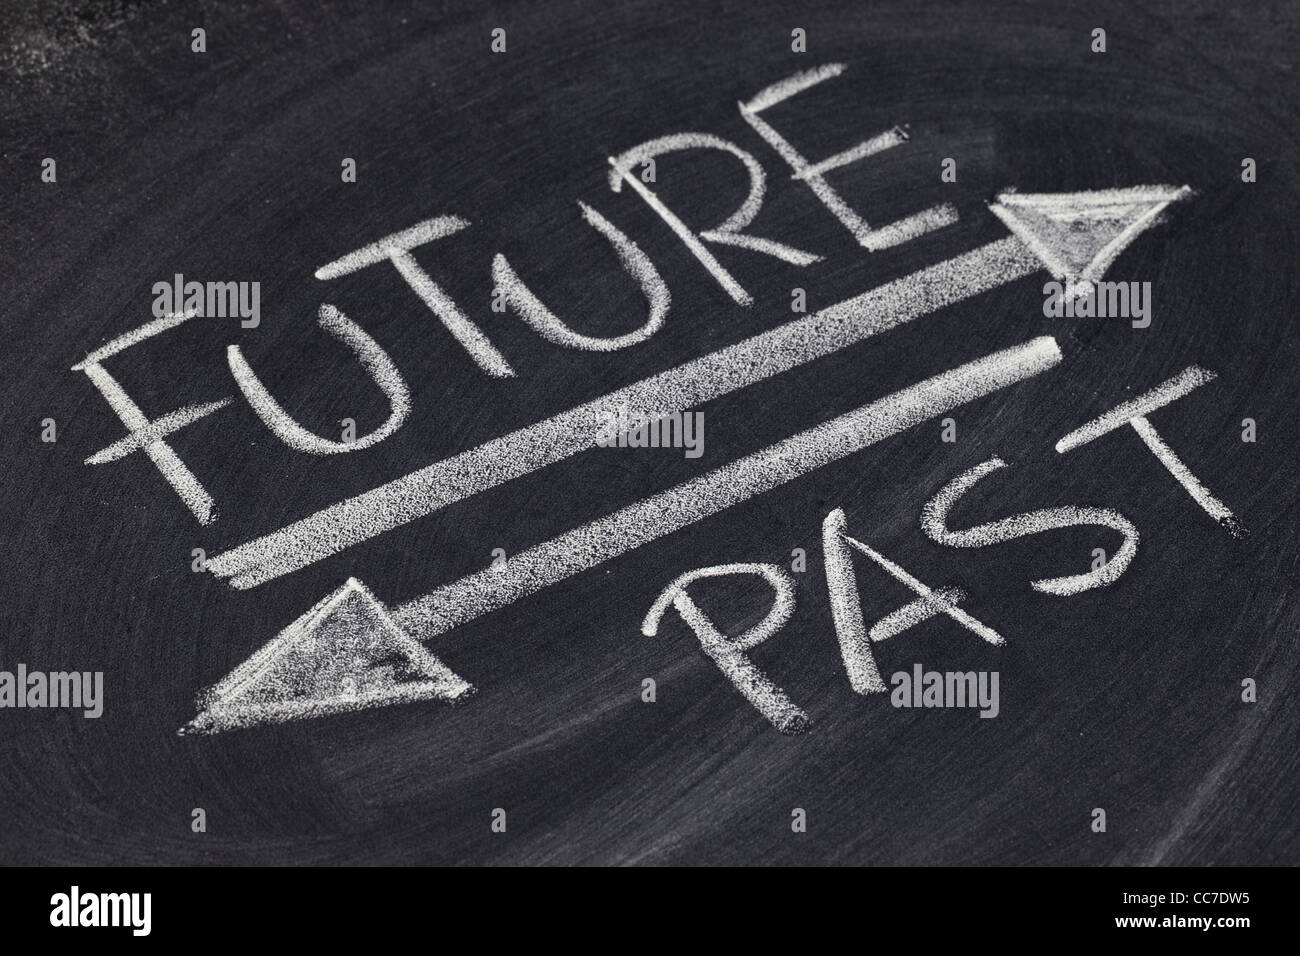 future and past concept - white chalk handwriting and drawing on blackboard - Stock Image